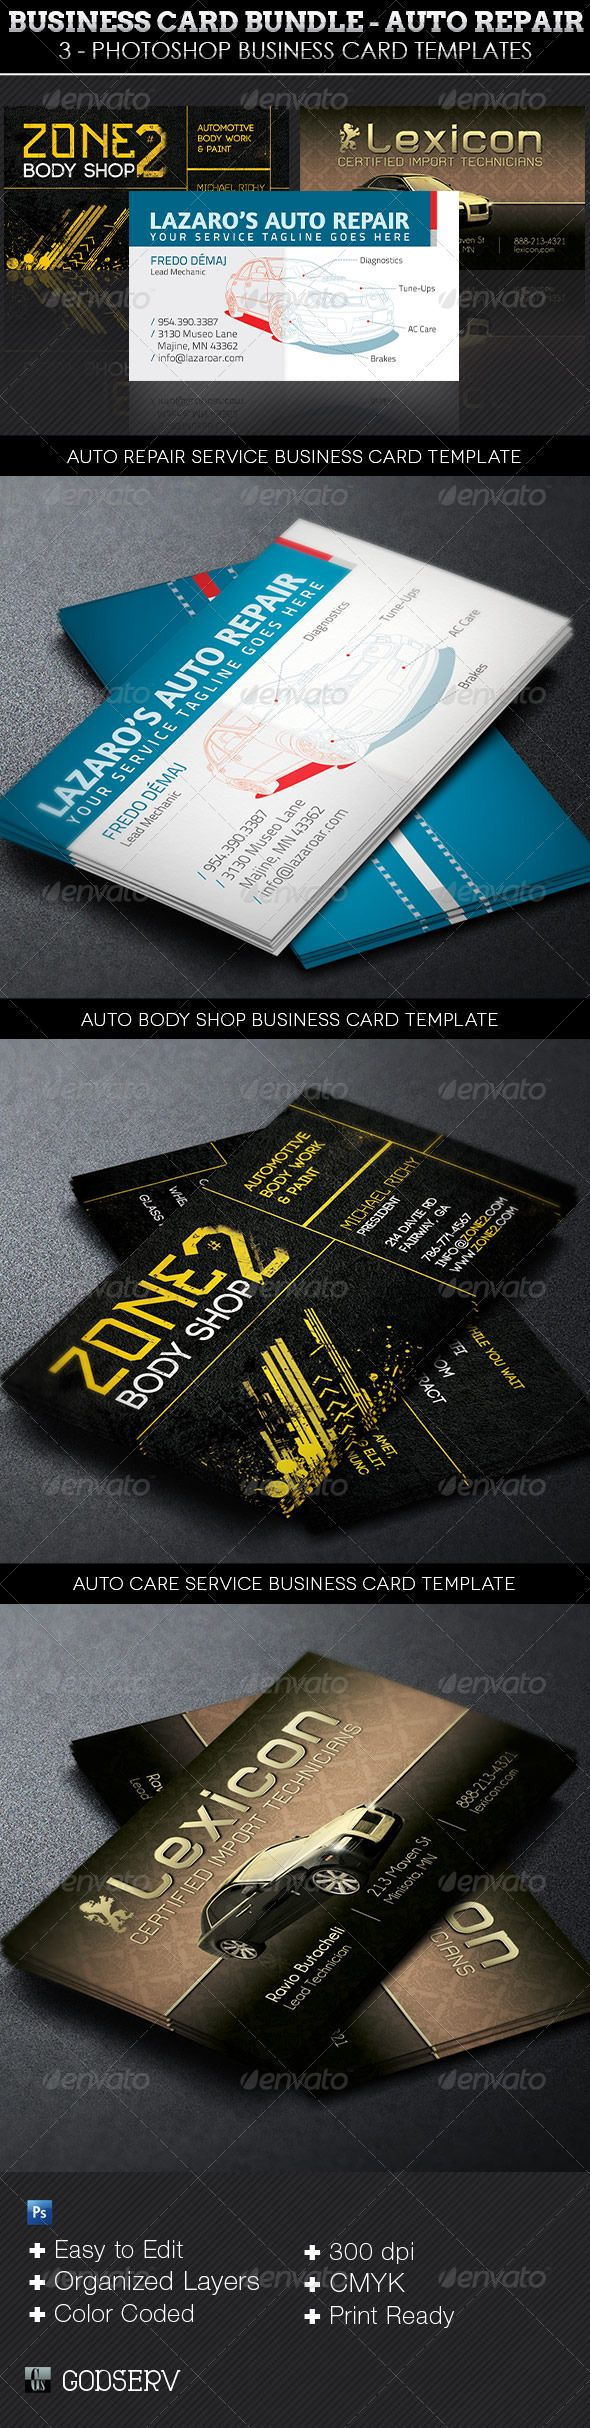 12 best business cards chef images on pinterest searching auto repair business card template bundle magicingreecefo Choice Image